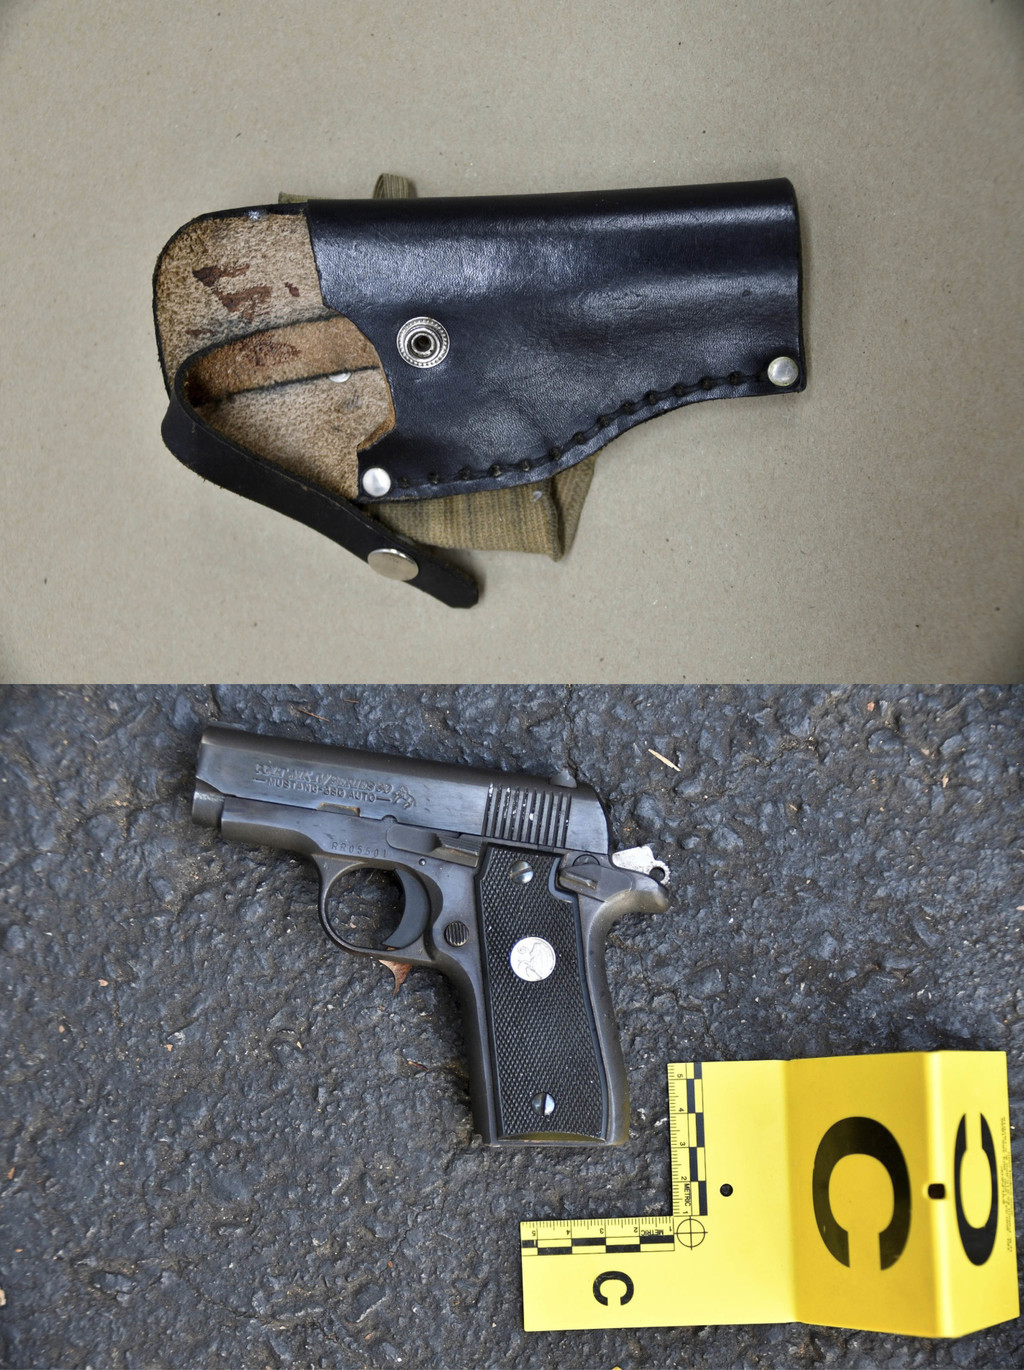 FILE - This combination of photos provided by the Charlotte-Mecklenburg Police Department on Sept. 24, 2016 shows an ankle holster, top...